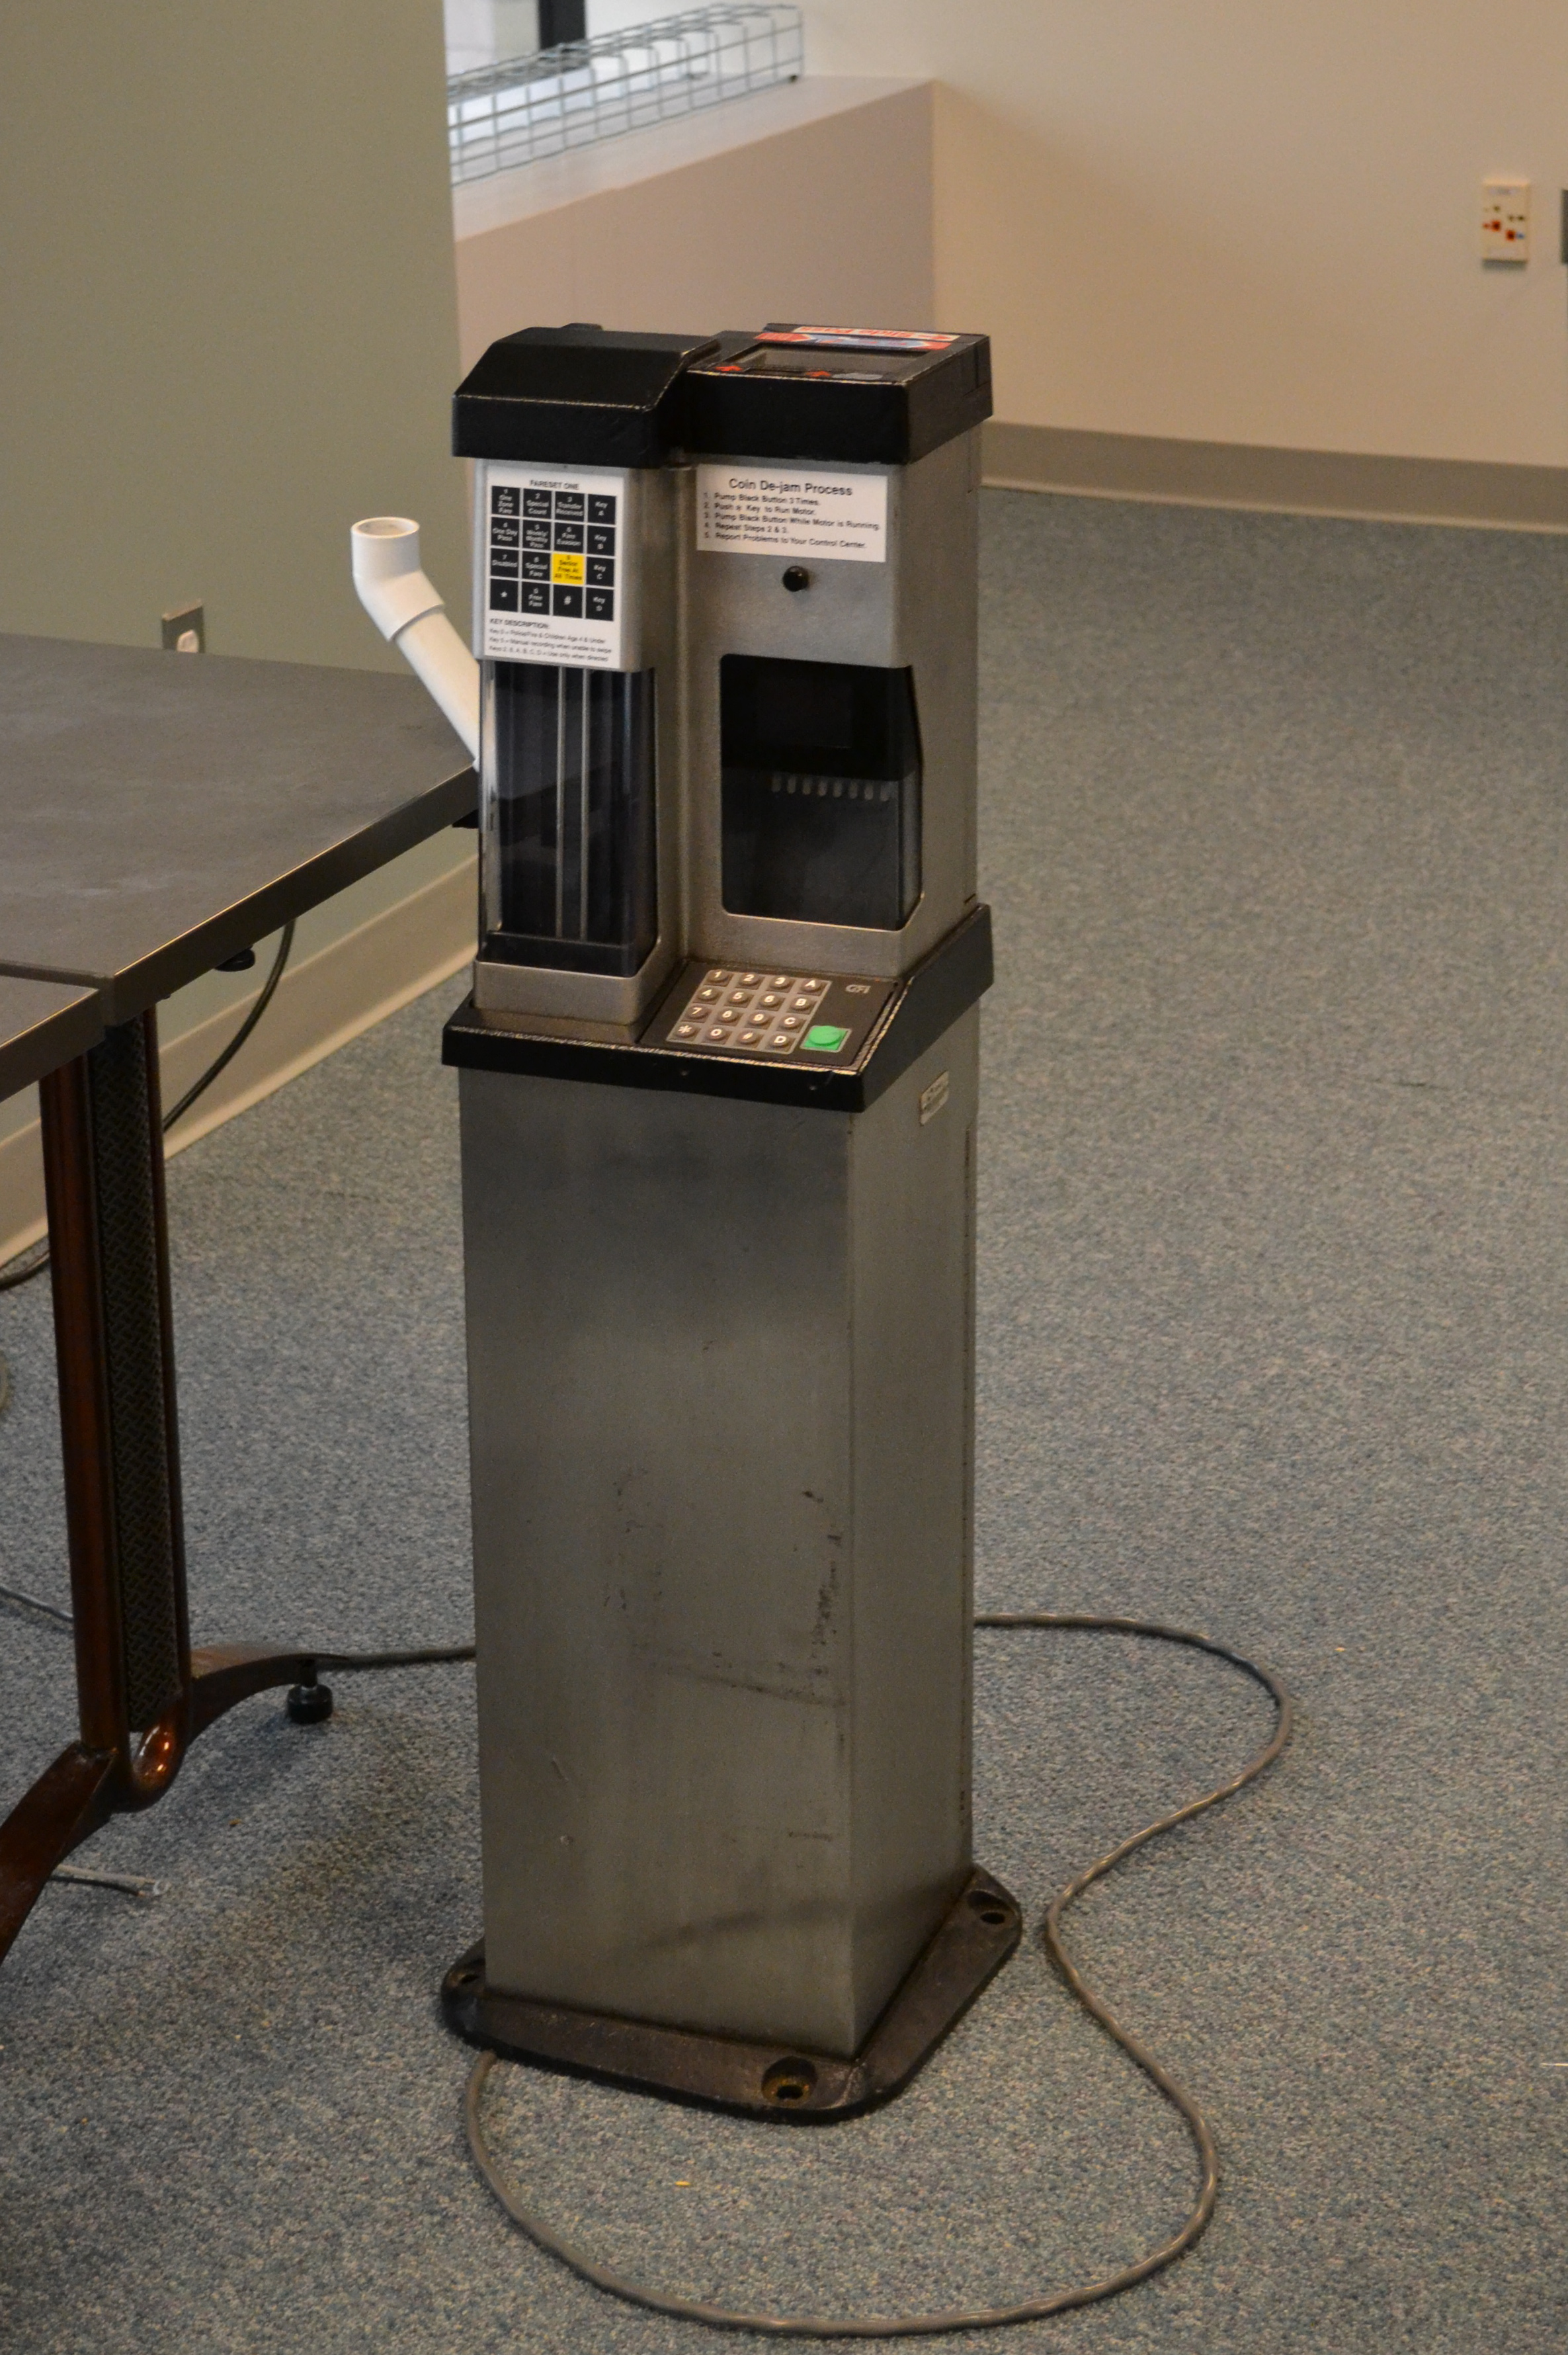 The bus and trolley fare boxes, which were updated fairly recently, will not be replaced but modified